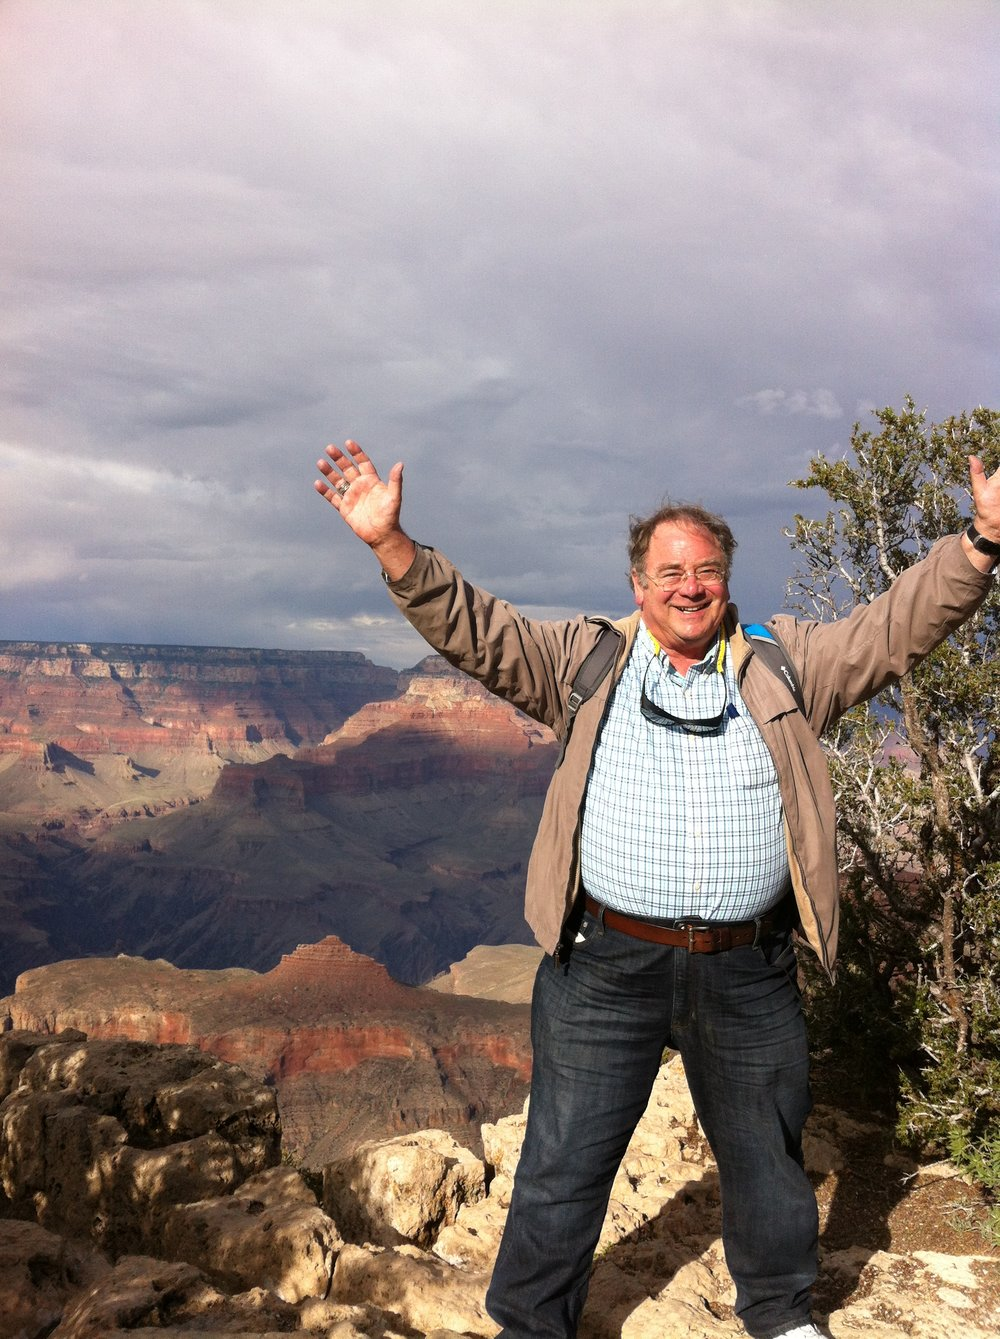 Living life without limits. - I came to Chesterfield physical therapy with unbelievable leg pain. in a relatively short time of therapy, I was able to go on the planned vacation out west, and thrilled to walk along the rim of the grand canyon. i am grateful to chesterfield physical therapy for relieving my pain and allowing me to achieve my goal.                                     -william sprinkle